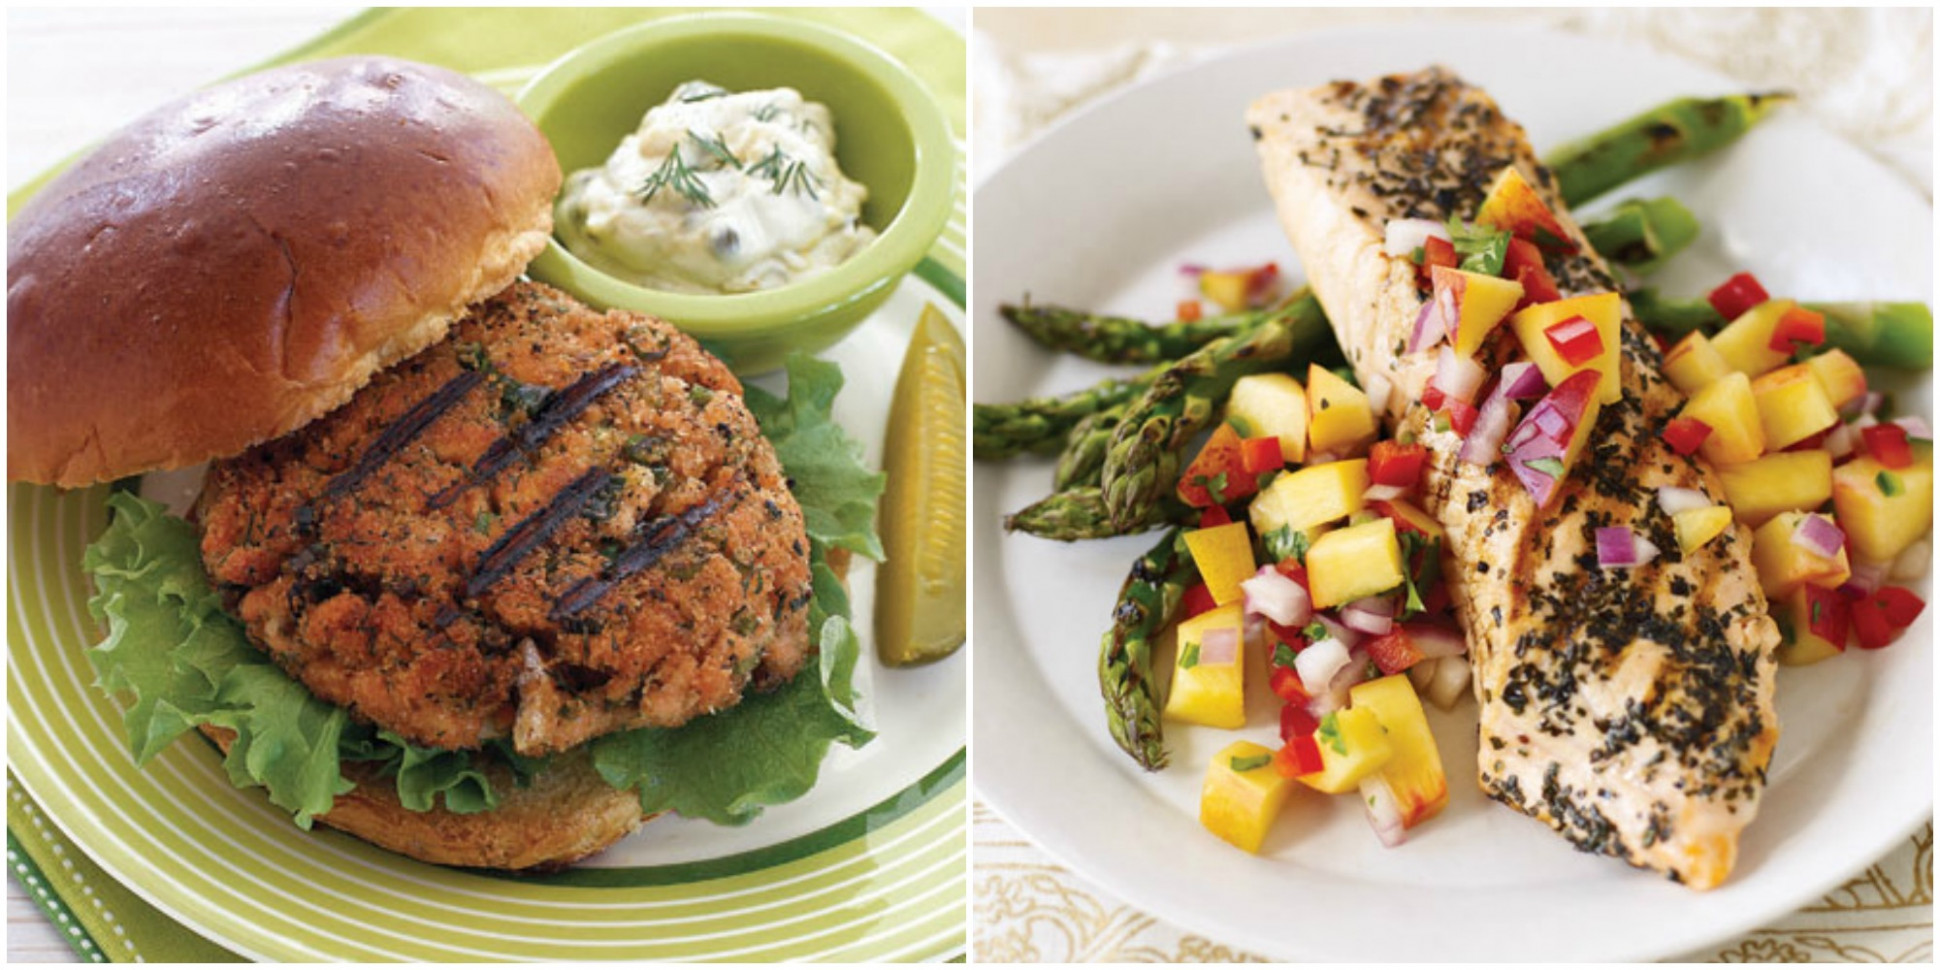 54 Easy Salmon Recipes From Baked to Grilled - How to Cook ..